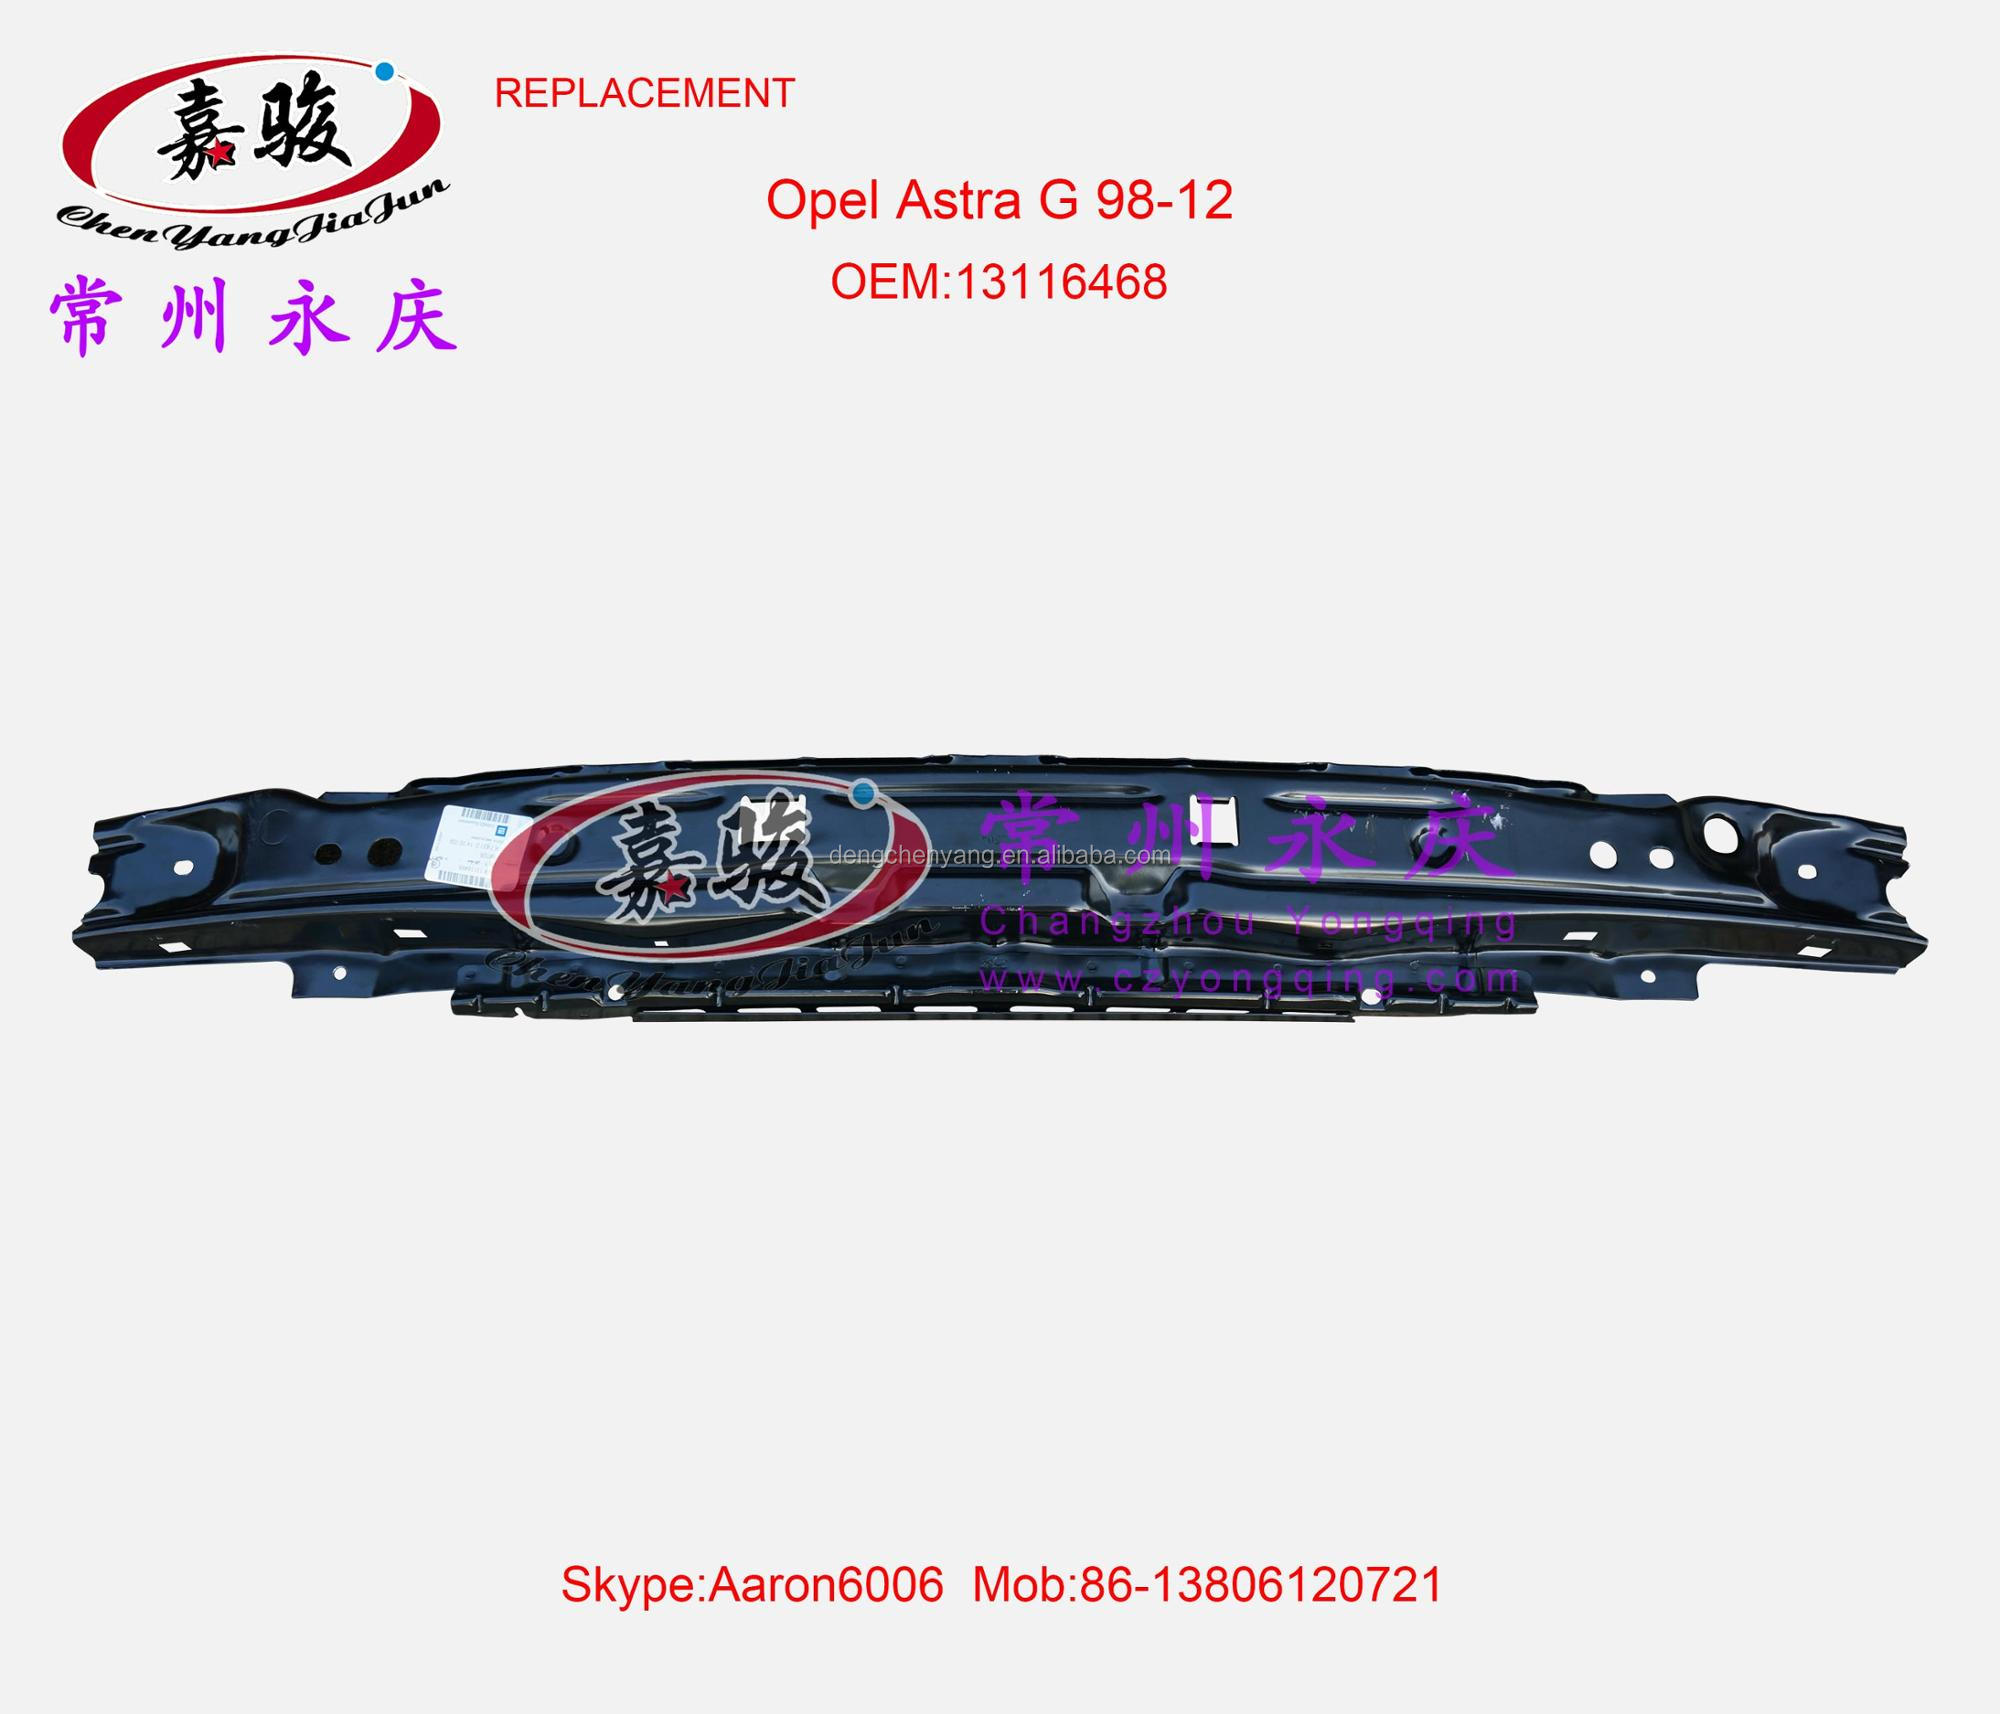 China Opel Astra Bumper Manufacturers And Mk4 Fuse Box Suppliers On